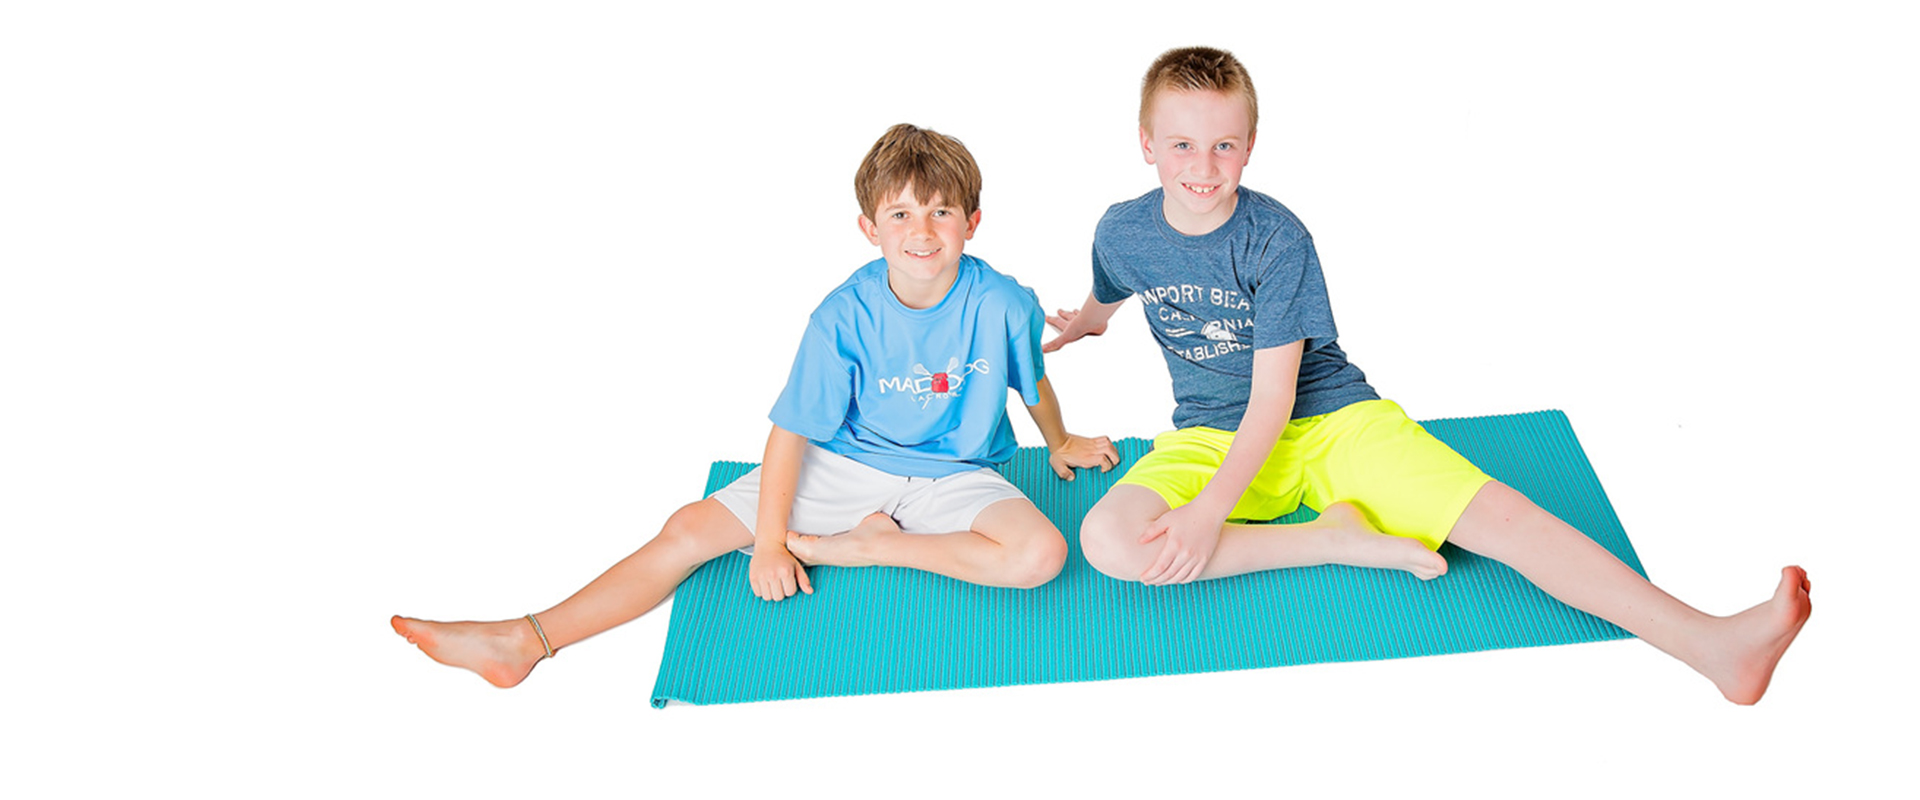 Yoga For Athletes-Teen Boys Tuesdays with Jenn Vinges